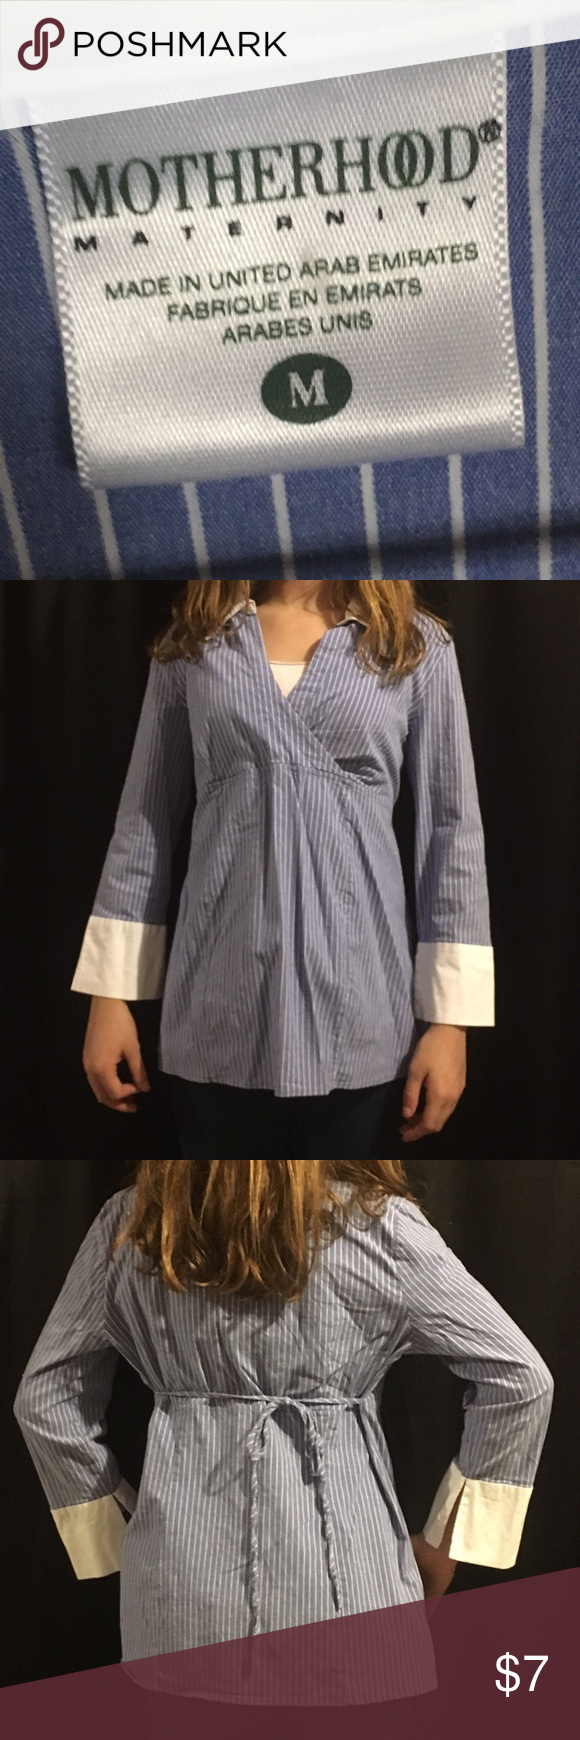 """Maternity Top Blue & white striped with white cuffs & colar, ties in back,should width 5"""", sleeve length 19"""", cuff width 5 3/4"""", neck width 5 1/2"""",v-cut length 10-10 1/2"""",full length front & back 24 1/2"""". Motherhood Maternity Tops"""